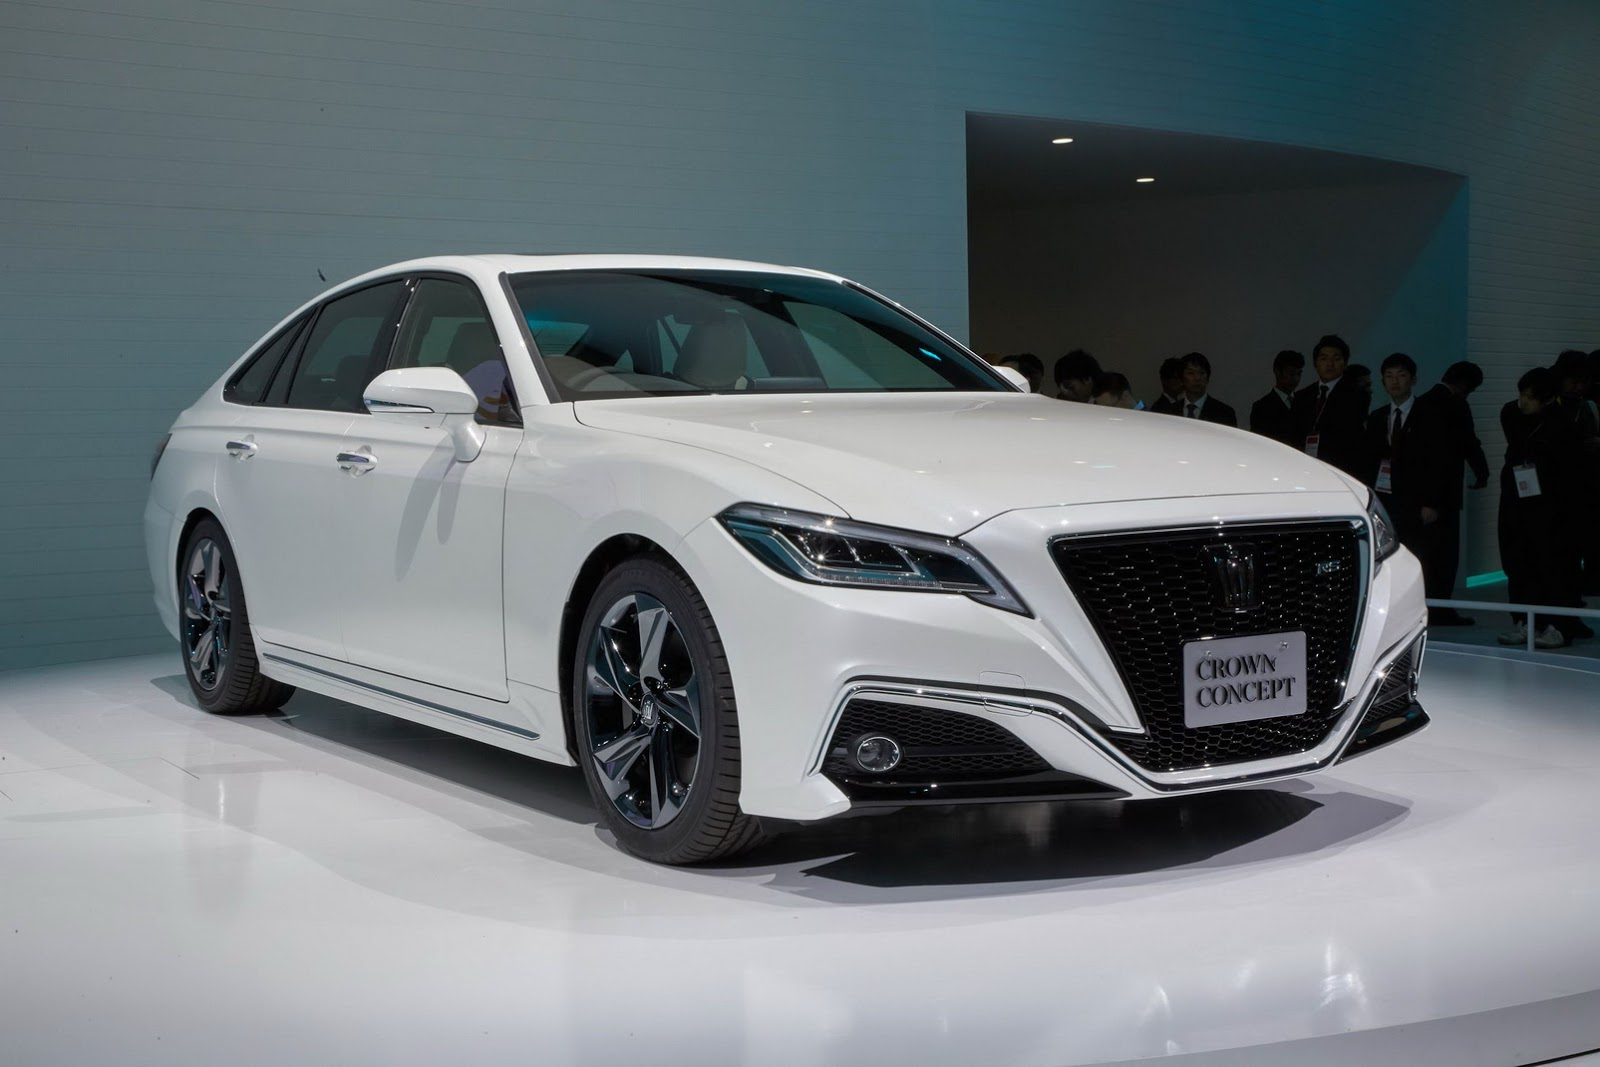 Toyota crown photo - 1